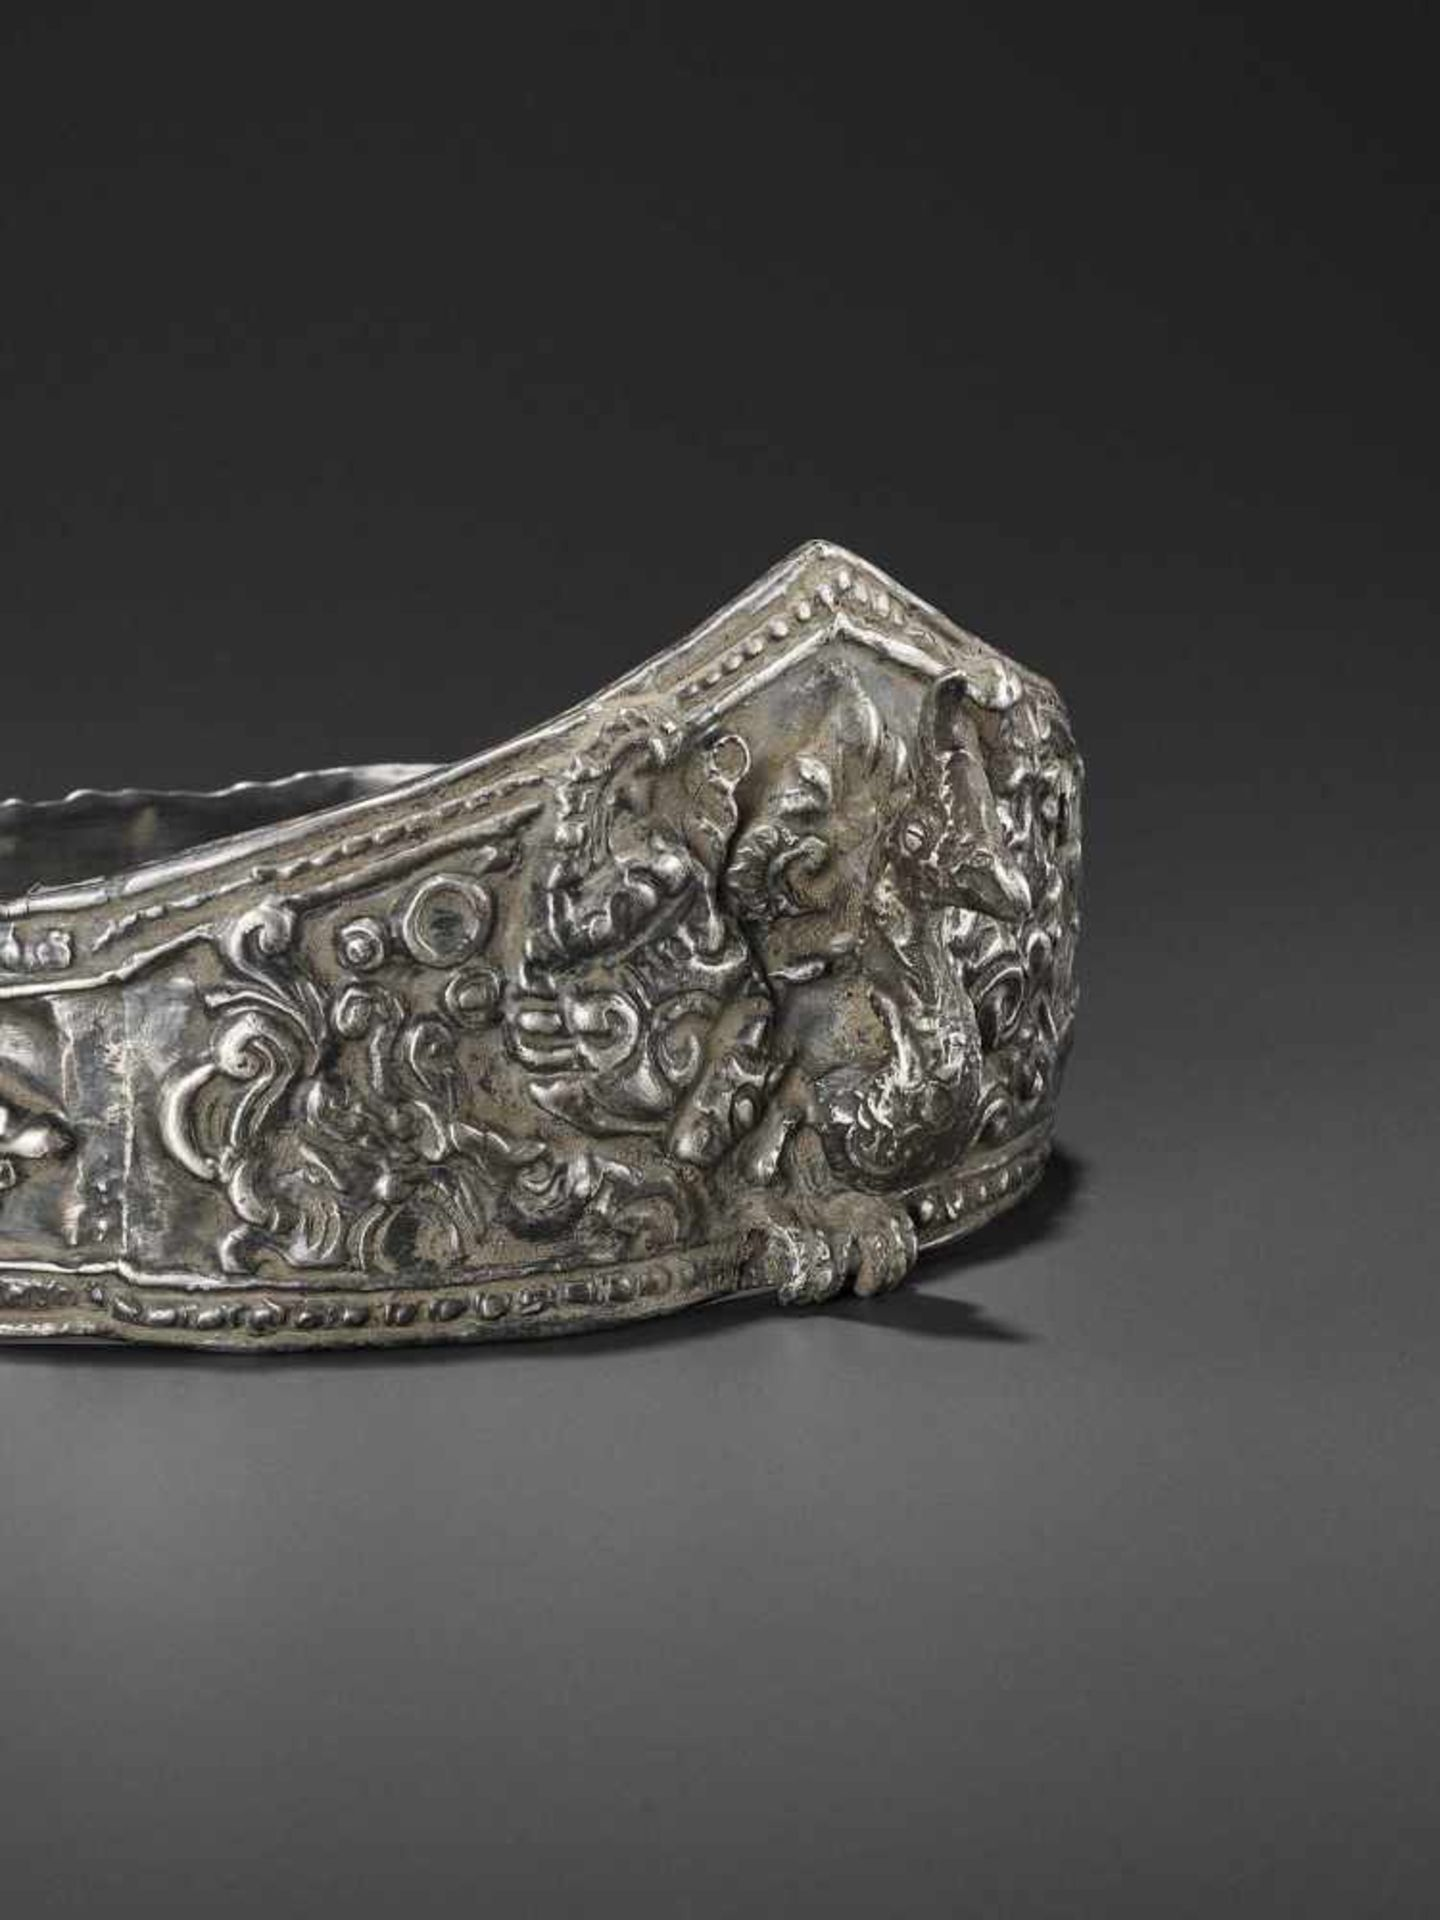 A LARGE ANDUNIQUE CHAM SILVERR EPOUSSÉ CROWN WITH A PHOENIX - Bild 4 aus 8